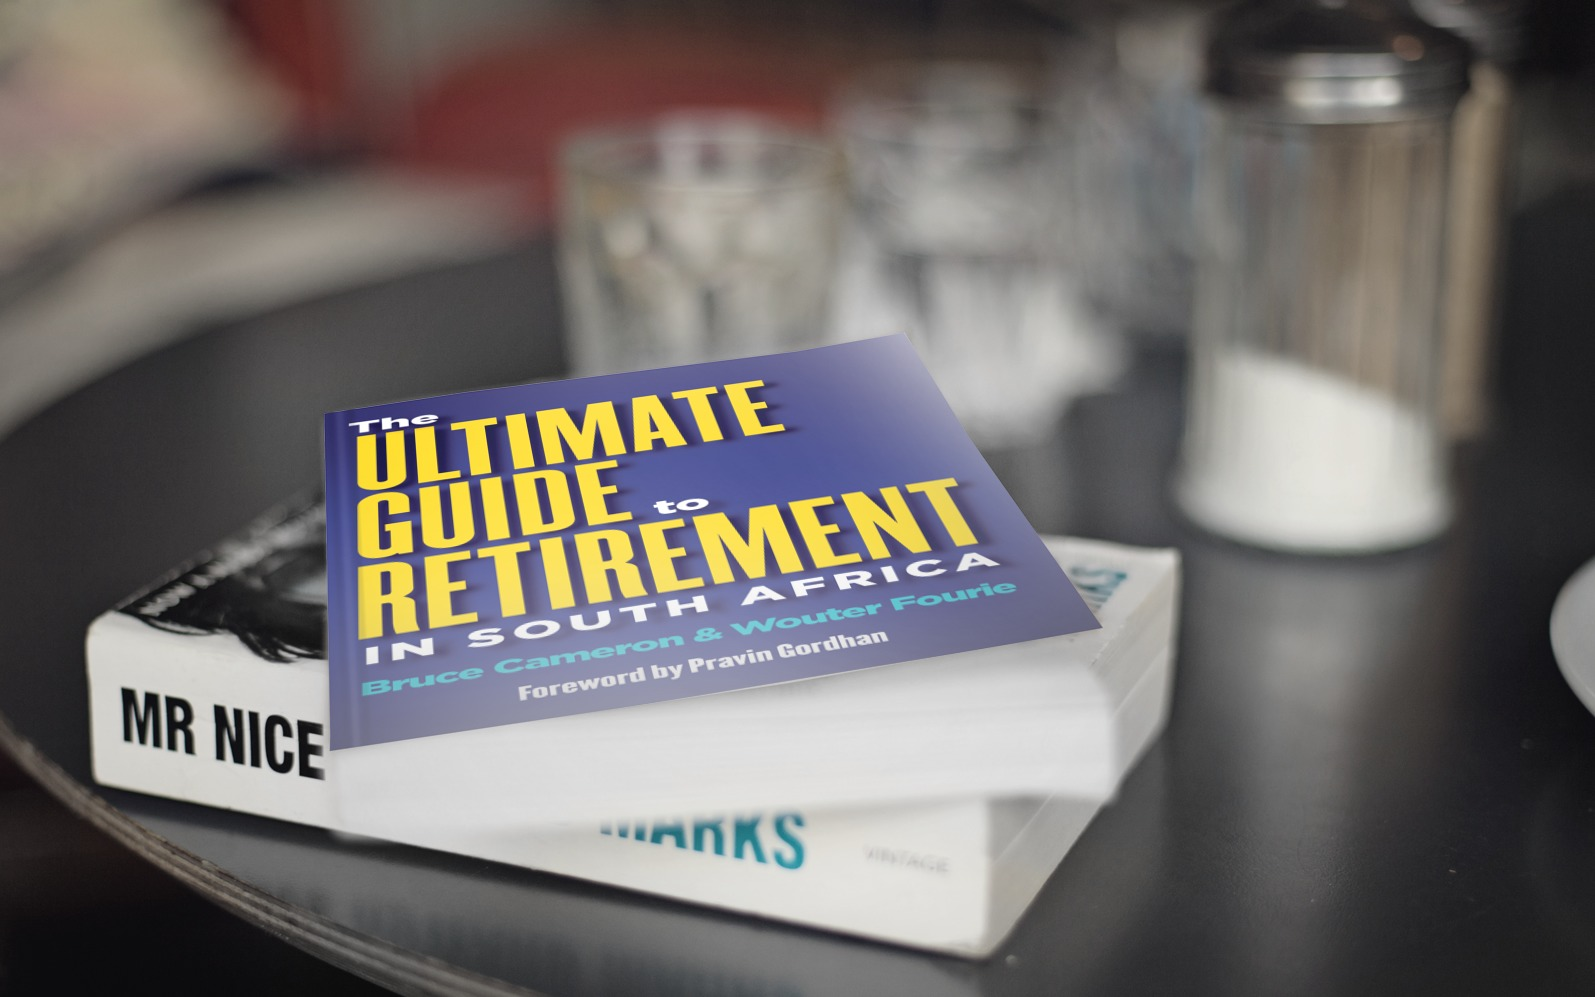 The ultimate guide to retirement now on shelves